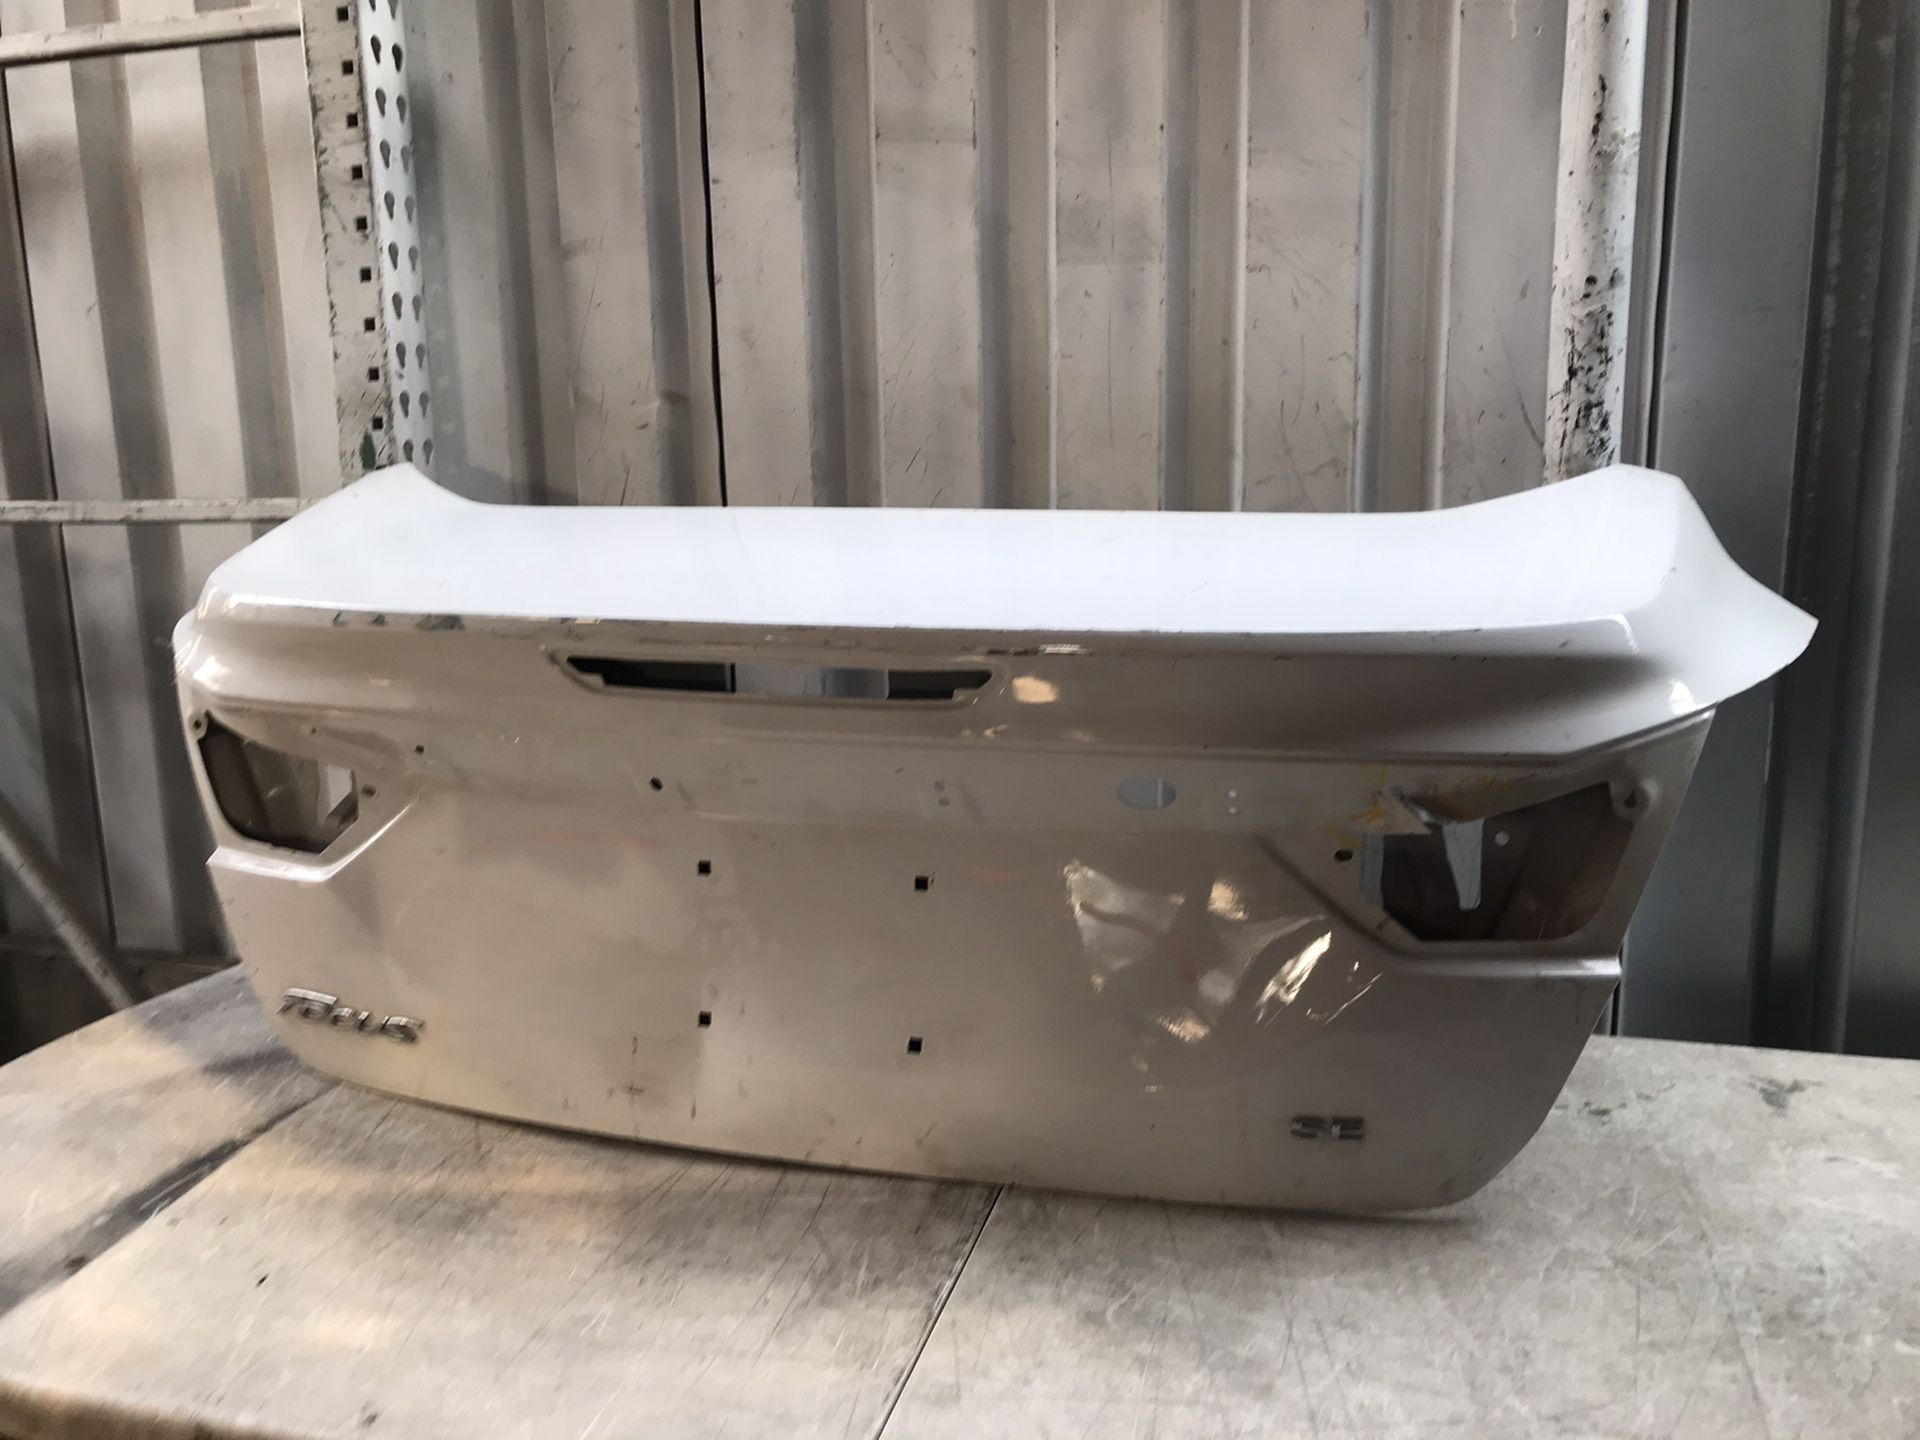 2012 2014 Ford Focus trunk lid